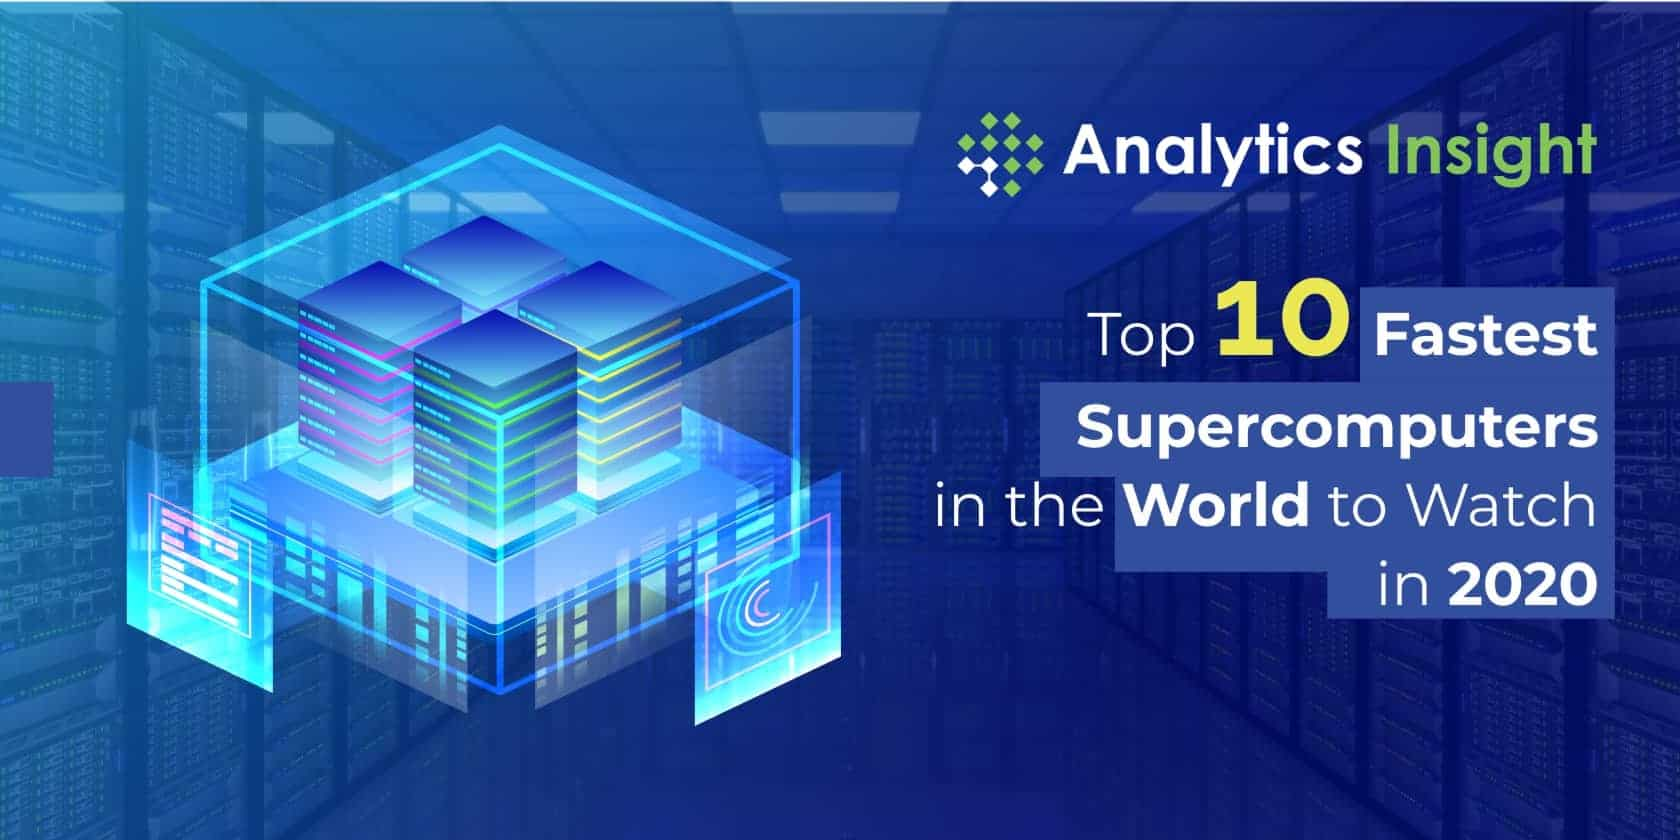 Top 10 Fastest #Supercomputers in the World to Watch in 2020